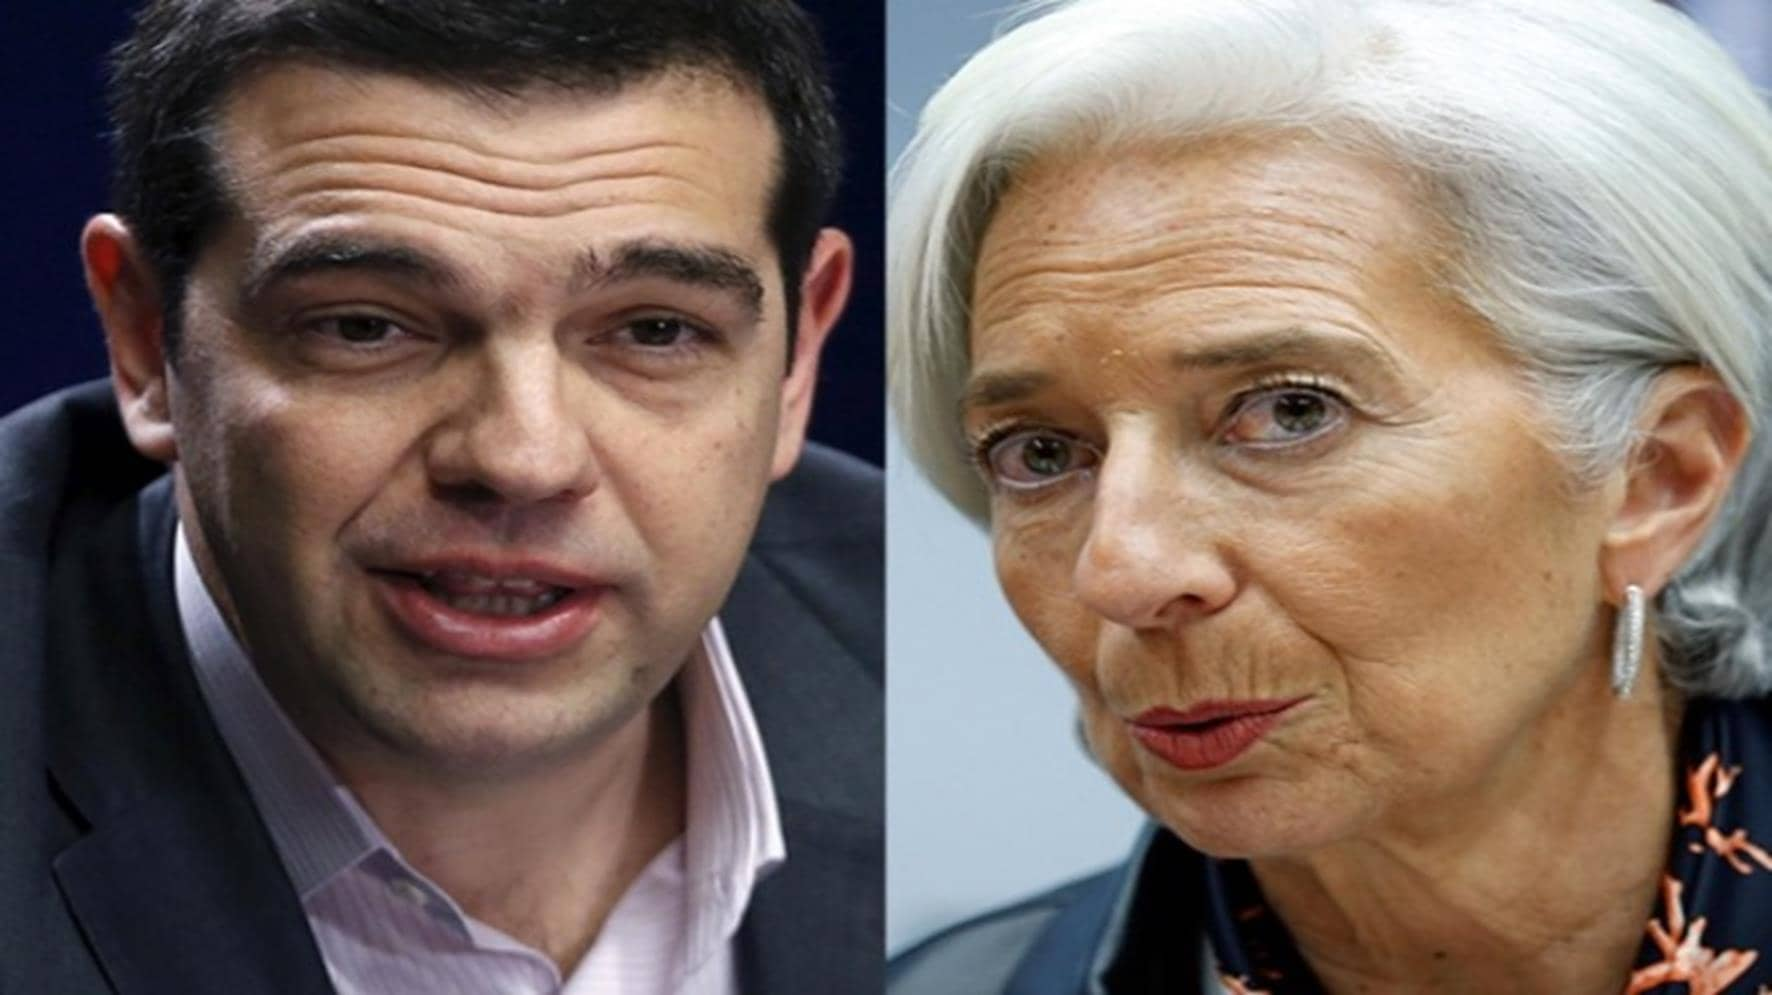 Tsipras Lagarde 696×464 (Copy)